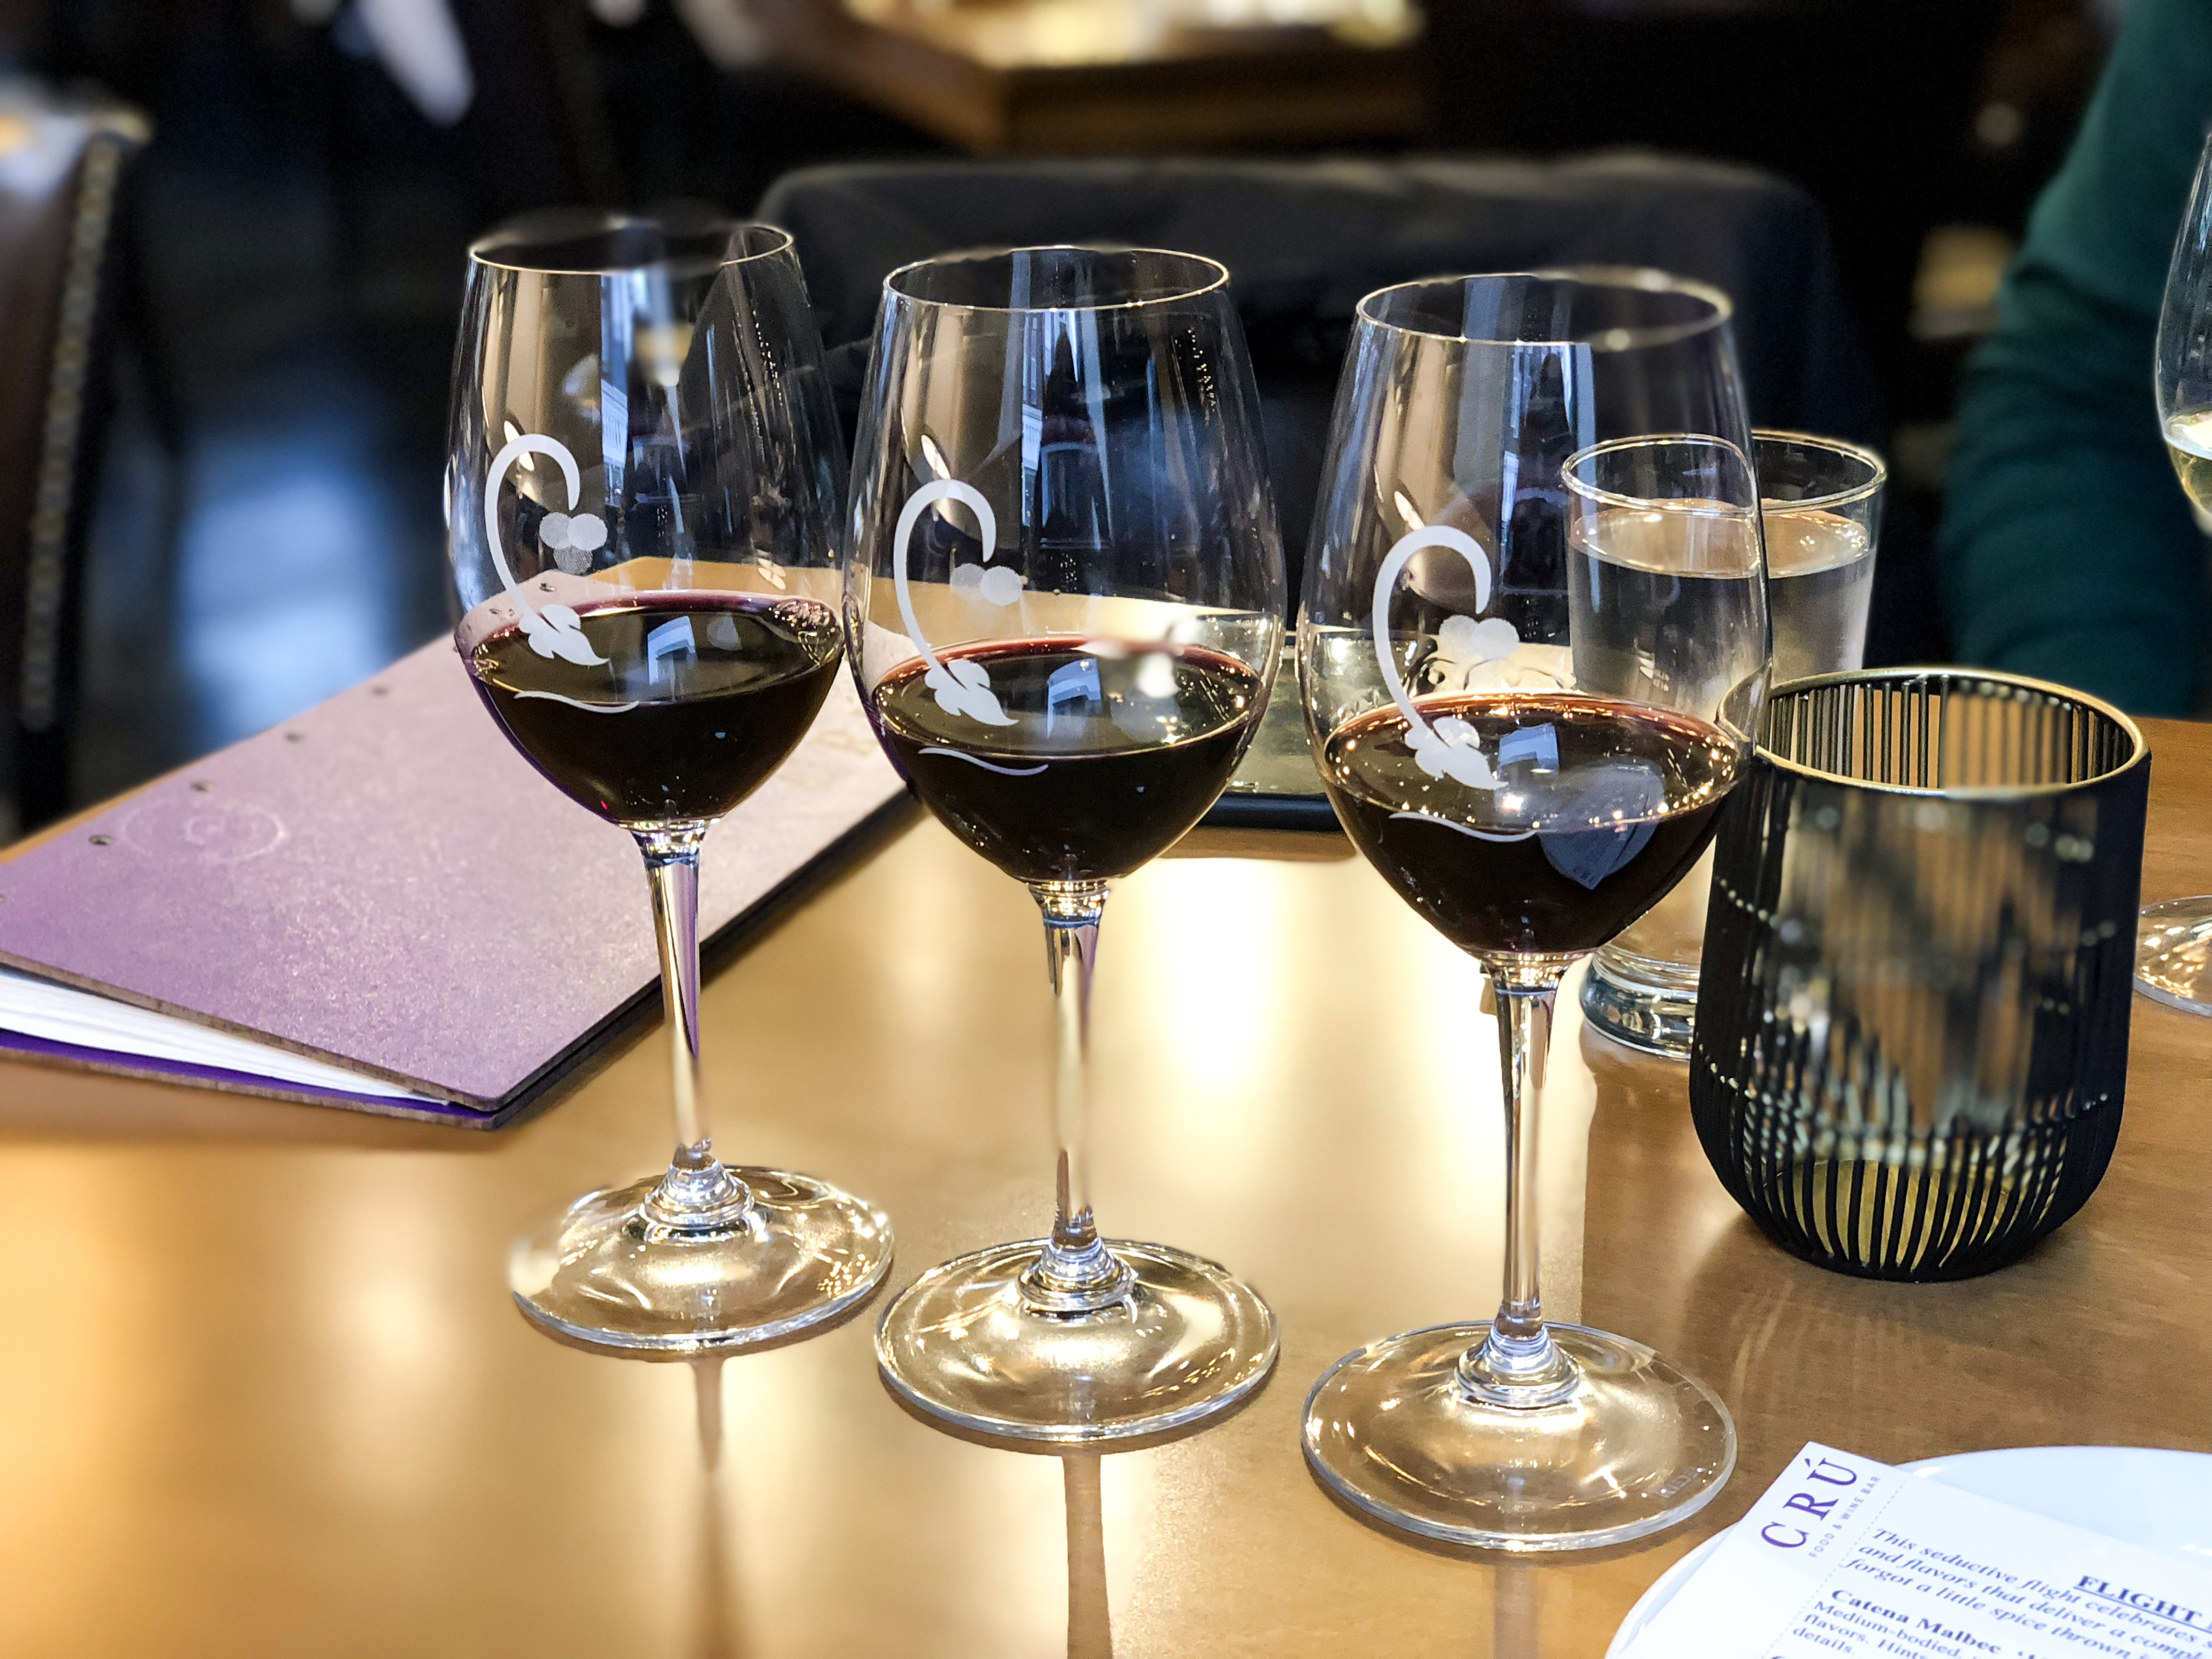 Three glasses of red wines that is part of a wine flight at Cru Food and Wine Bar